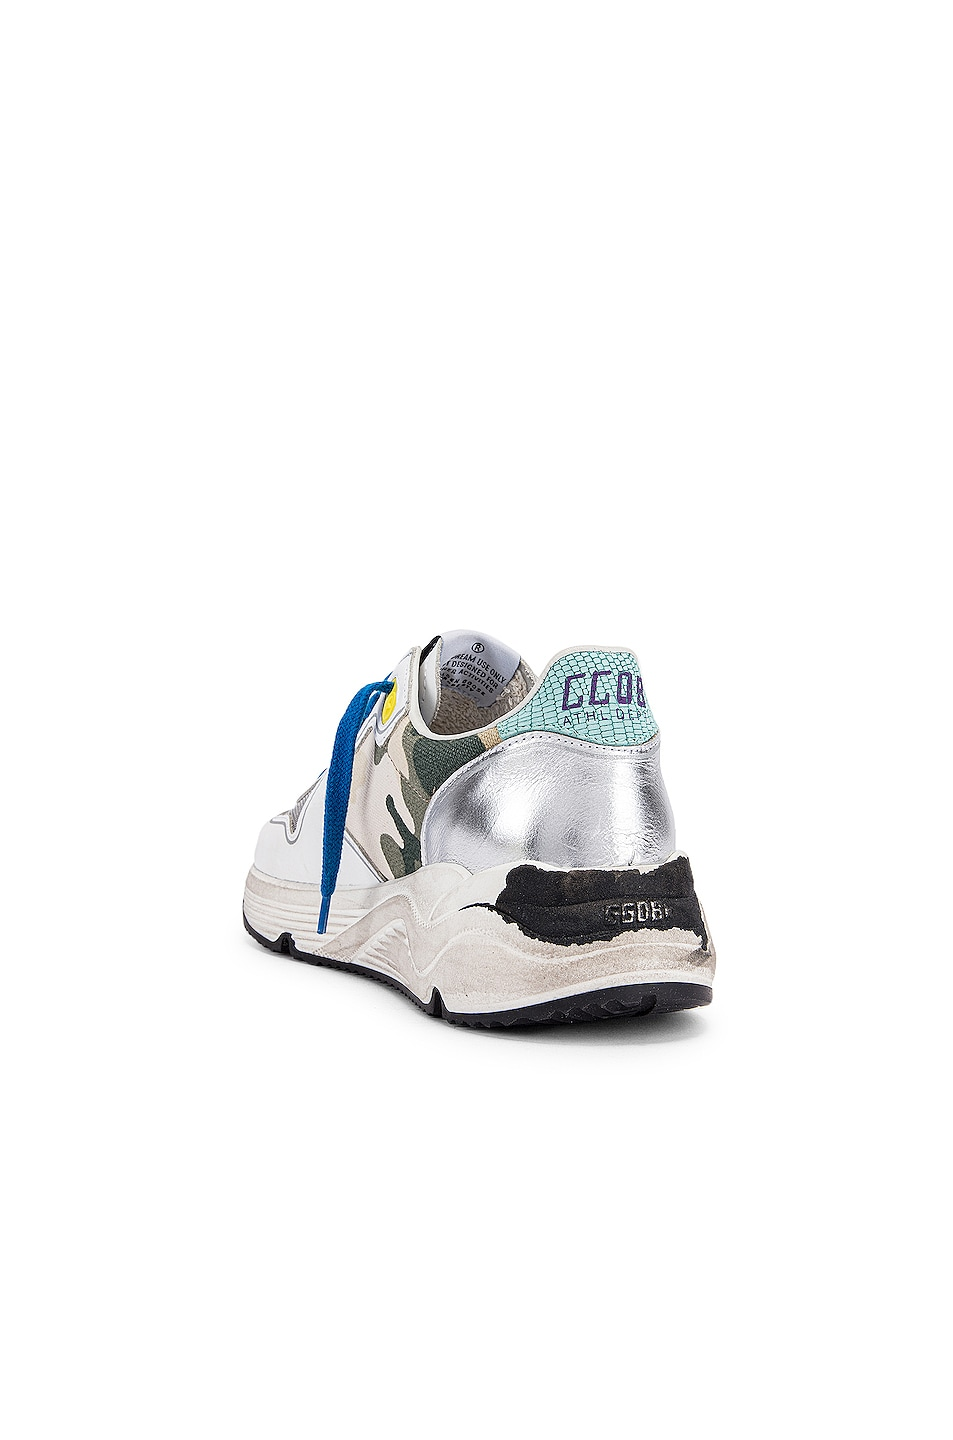 Image 3 of Golden Goose Running Sole Sneaker in White & Camouflage